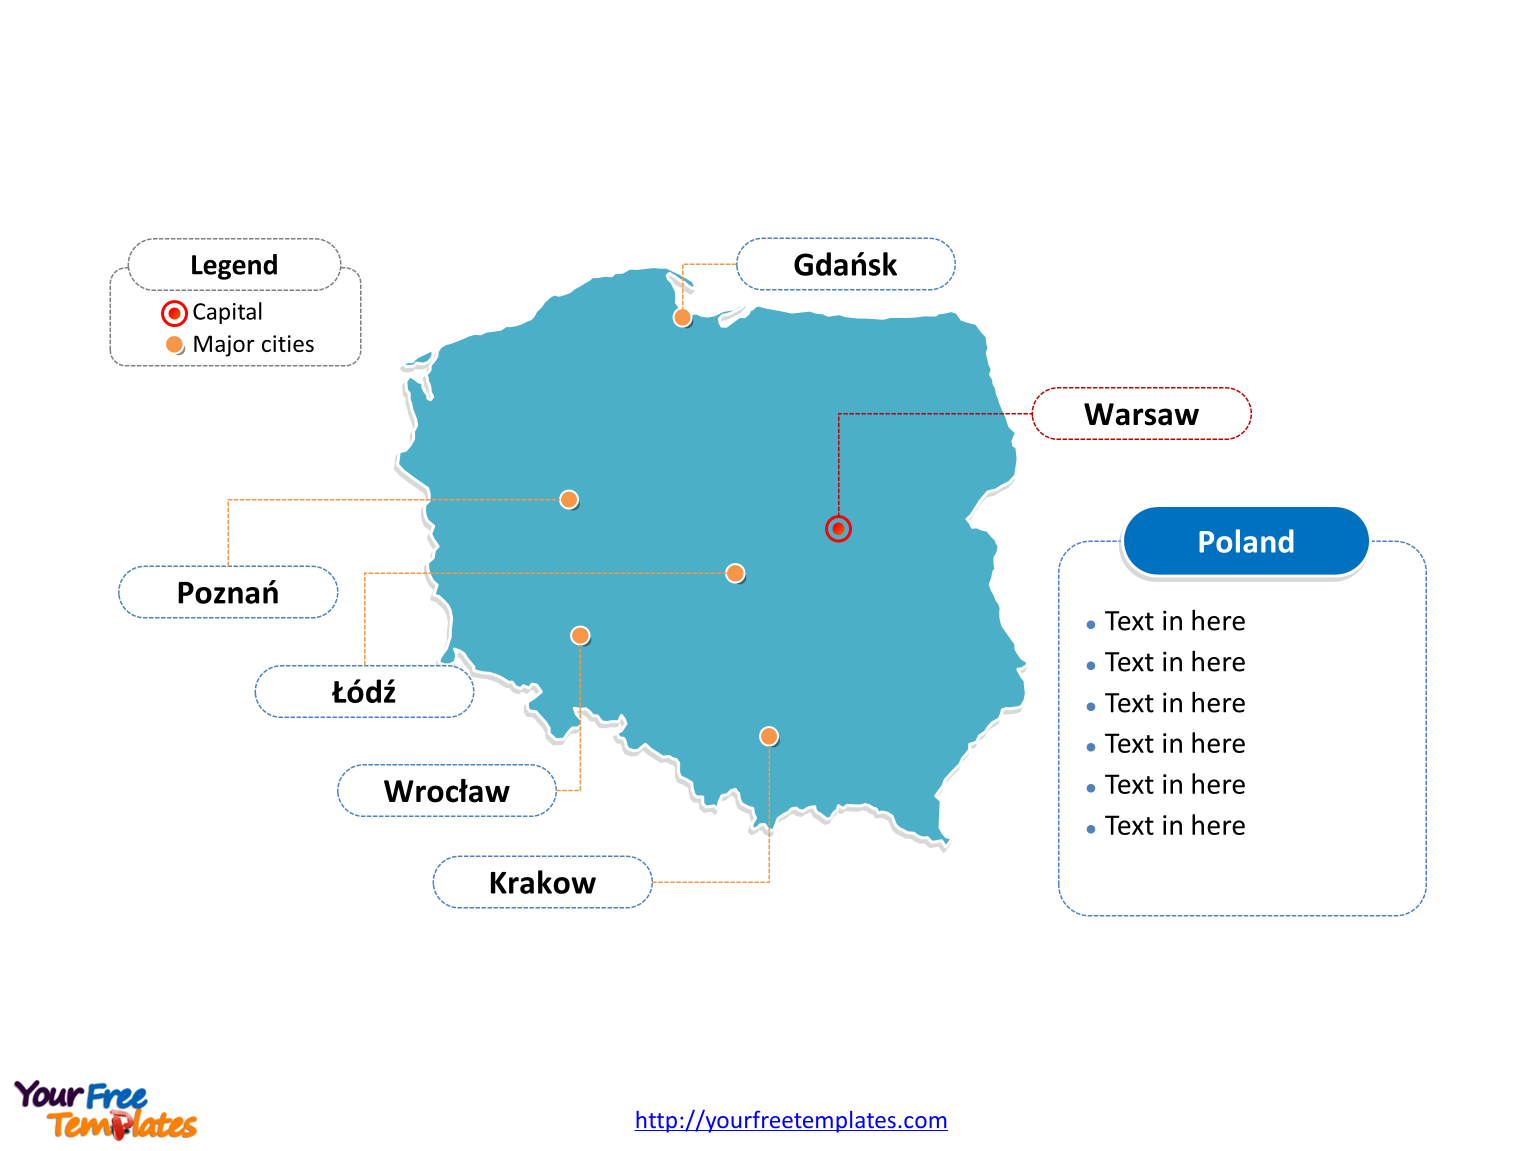 Capital Of Poland Map.Free Poland Powerpoint Map Free Powerpoint Templates